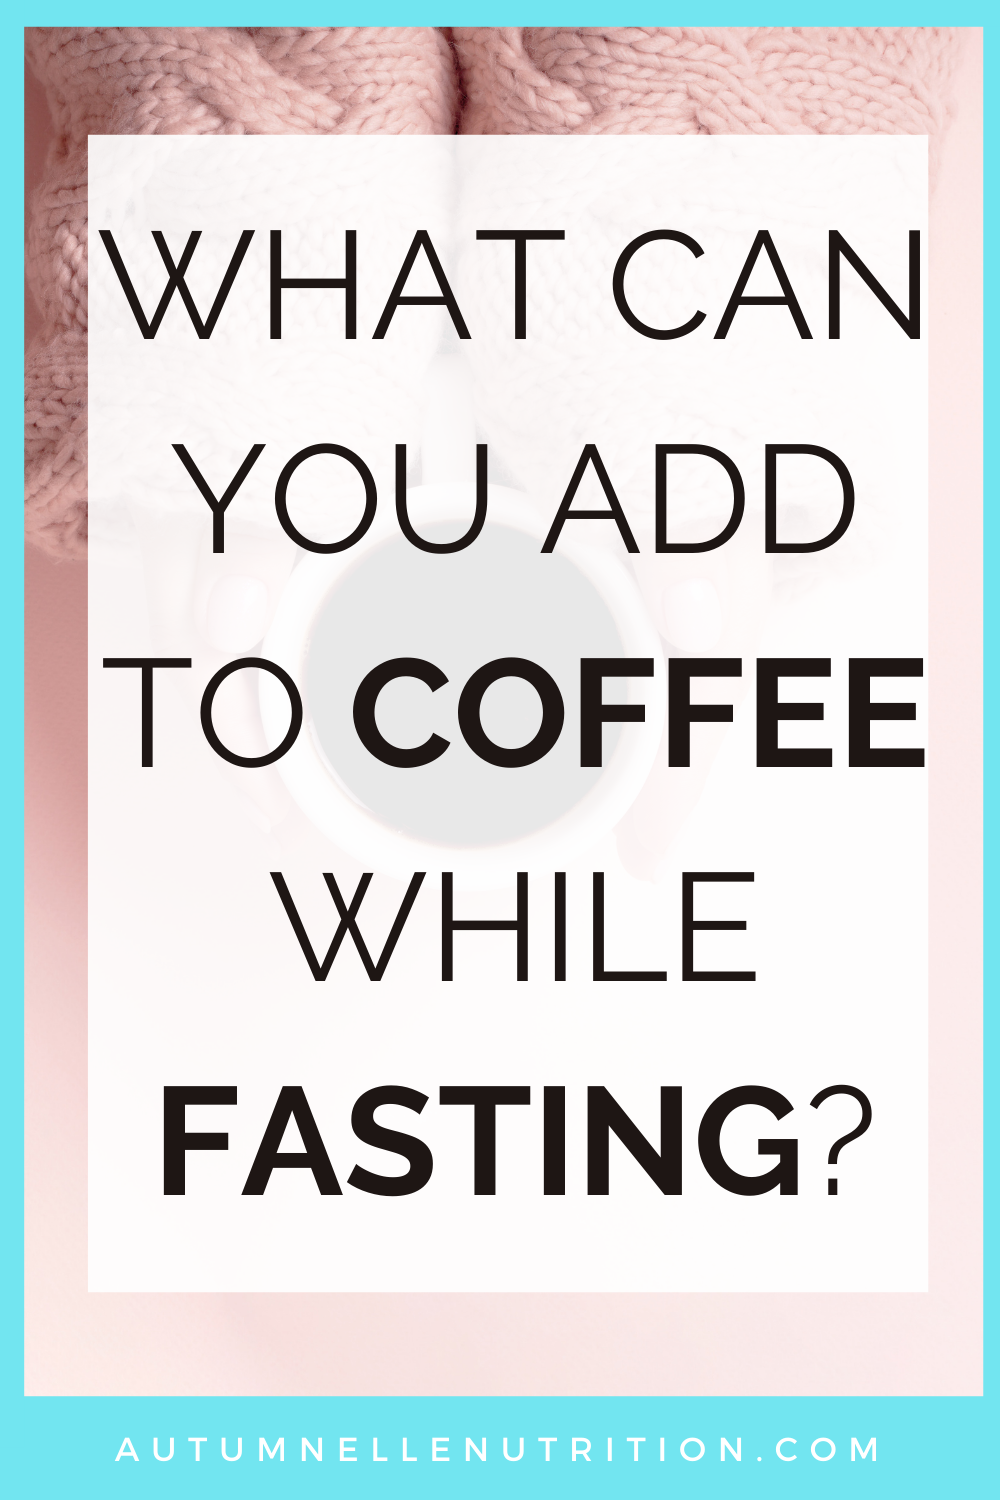 what can you add to coffee while fasting